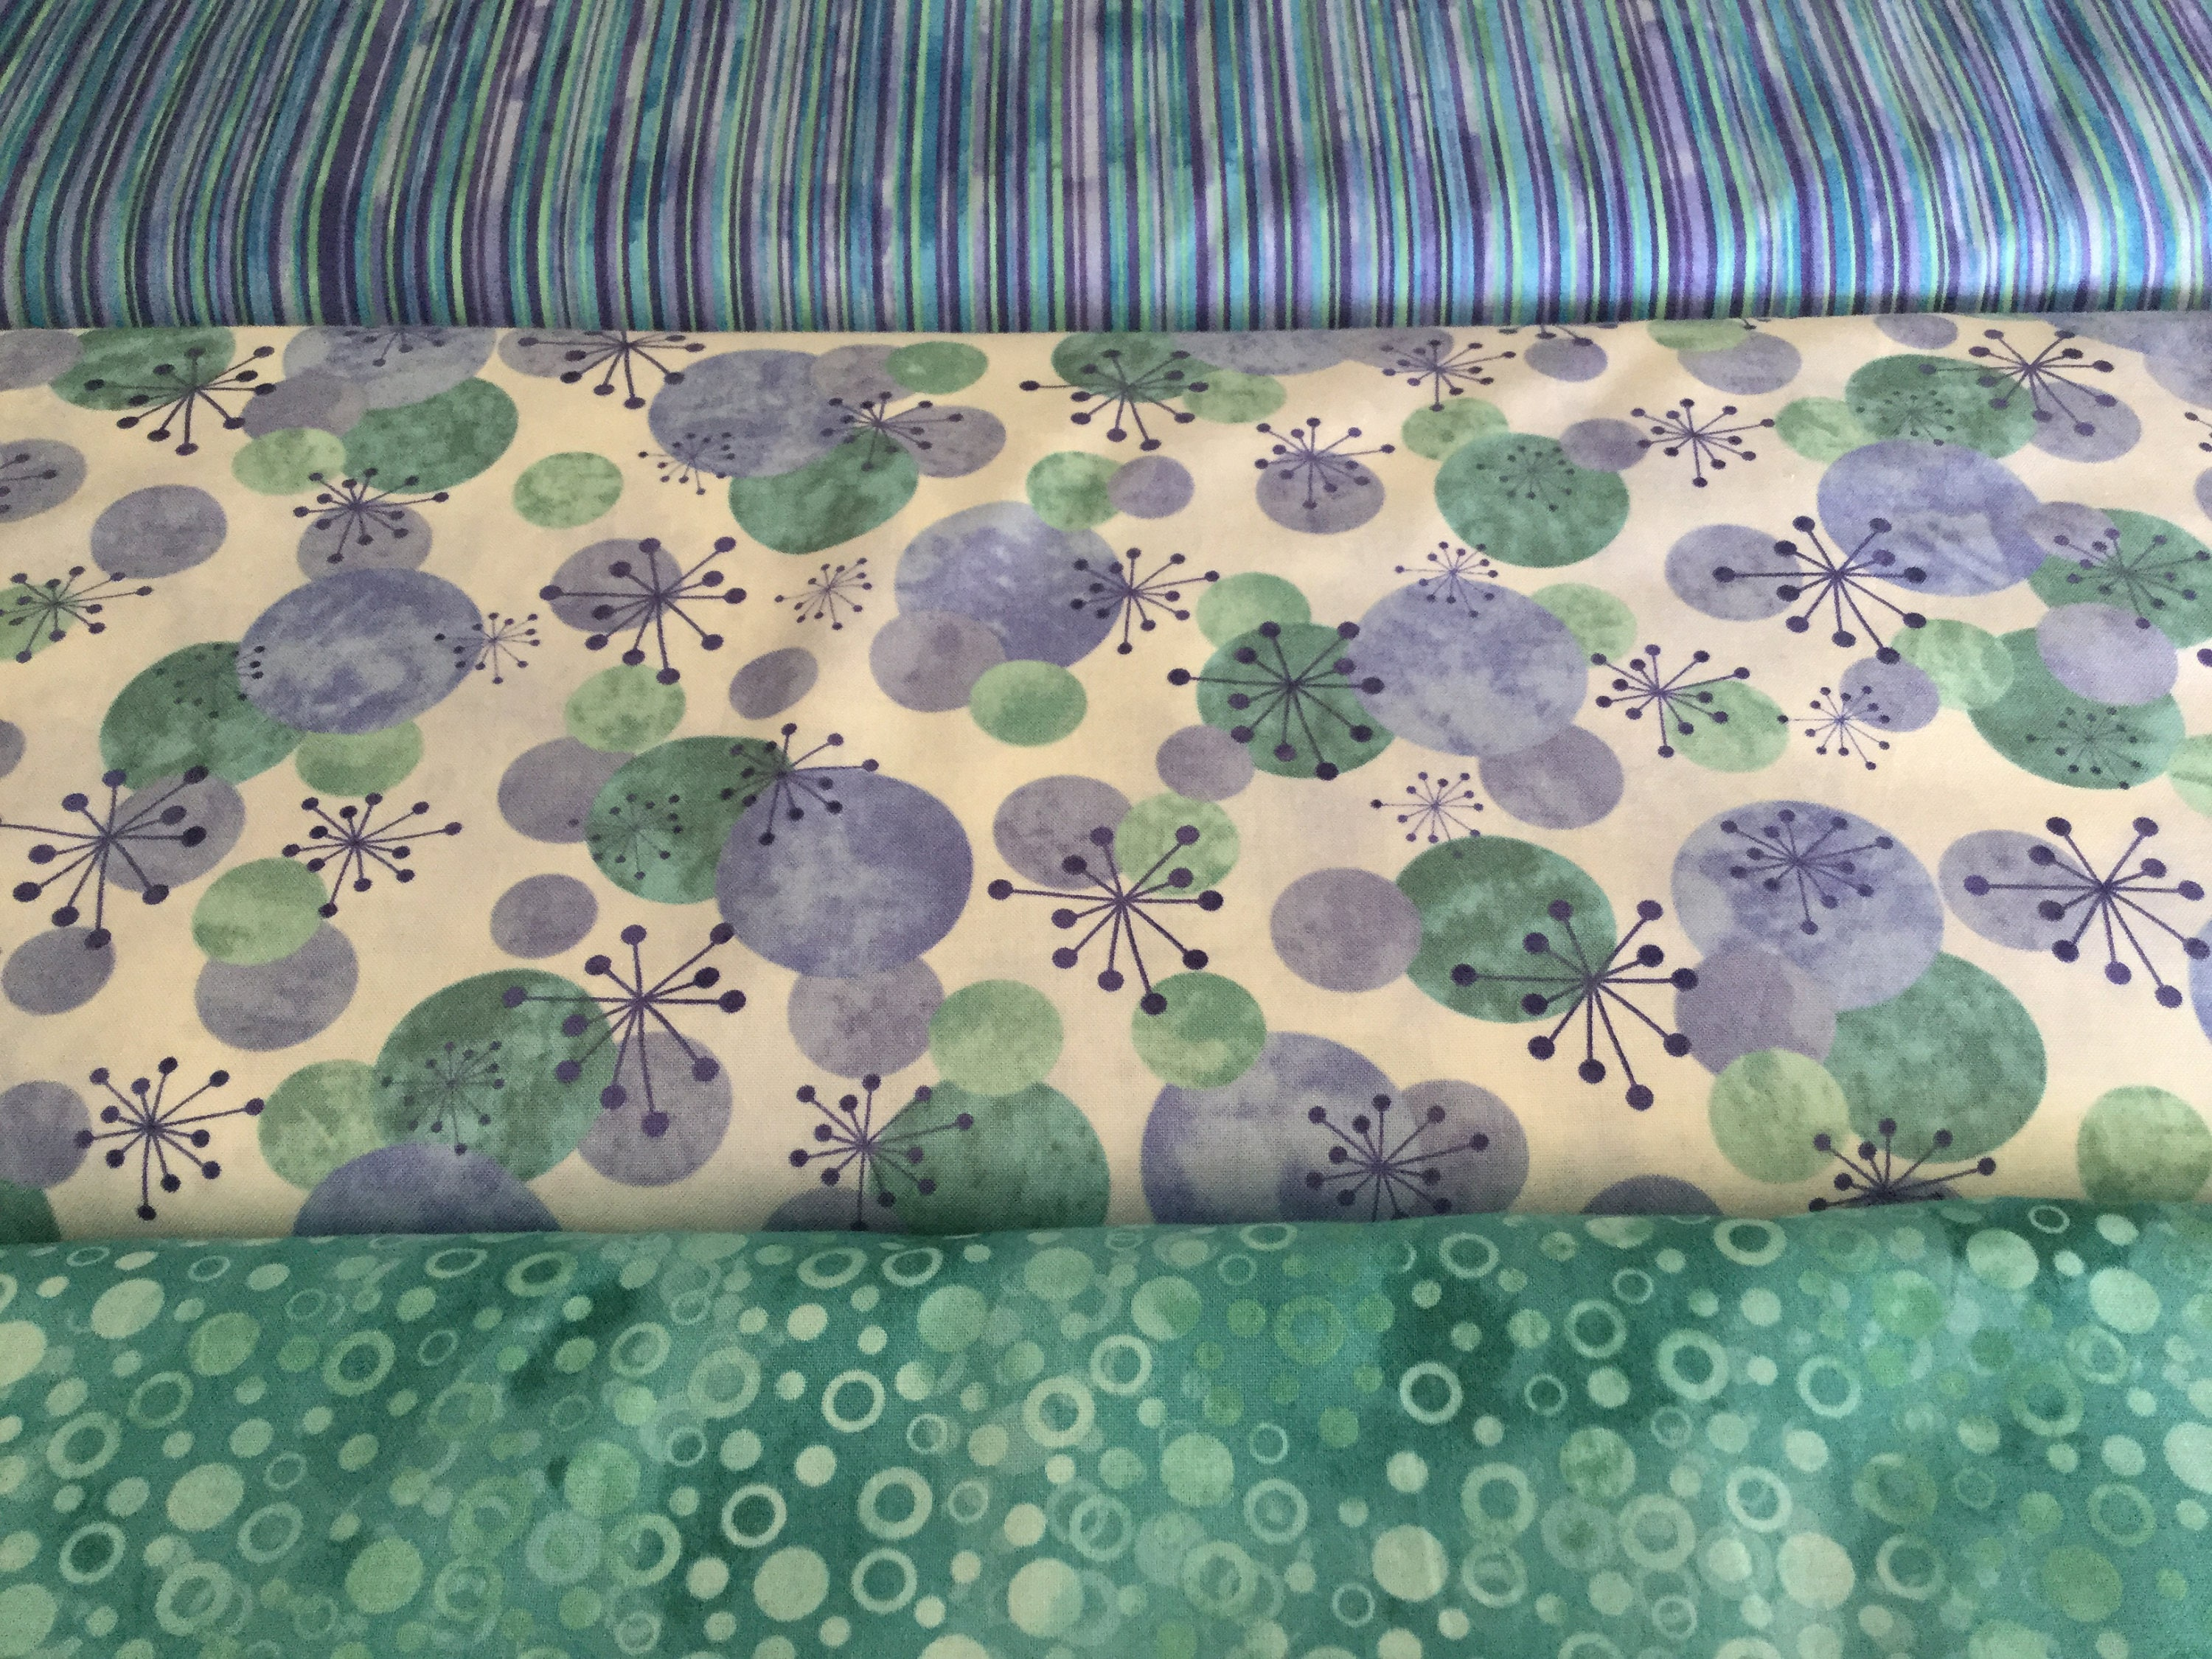 Northcott fabric cosmos series sold by the half yard for The fabric of the cosmos series